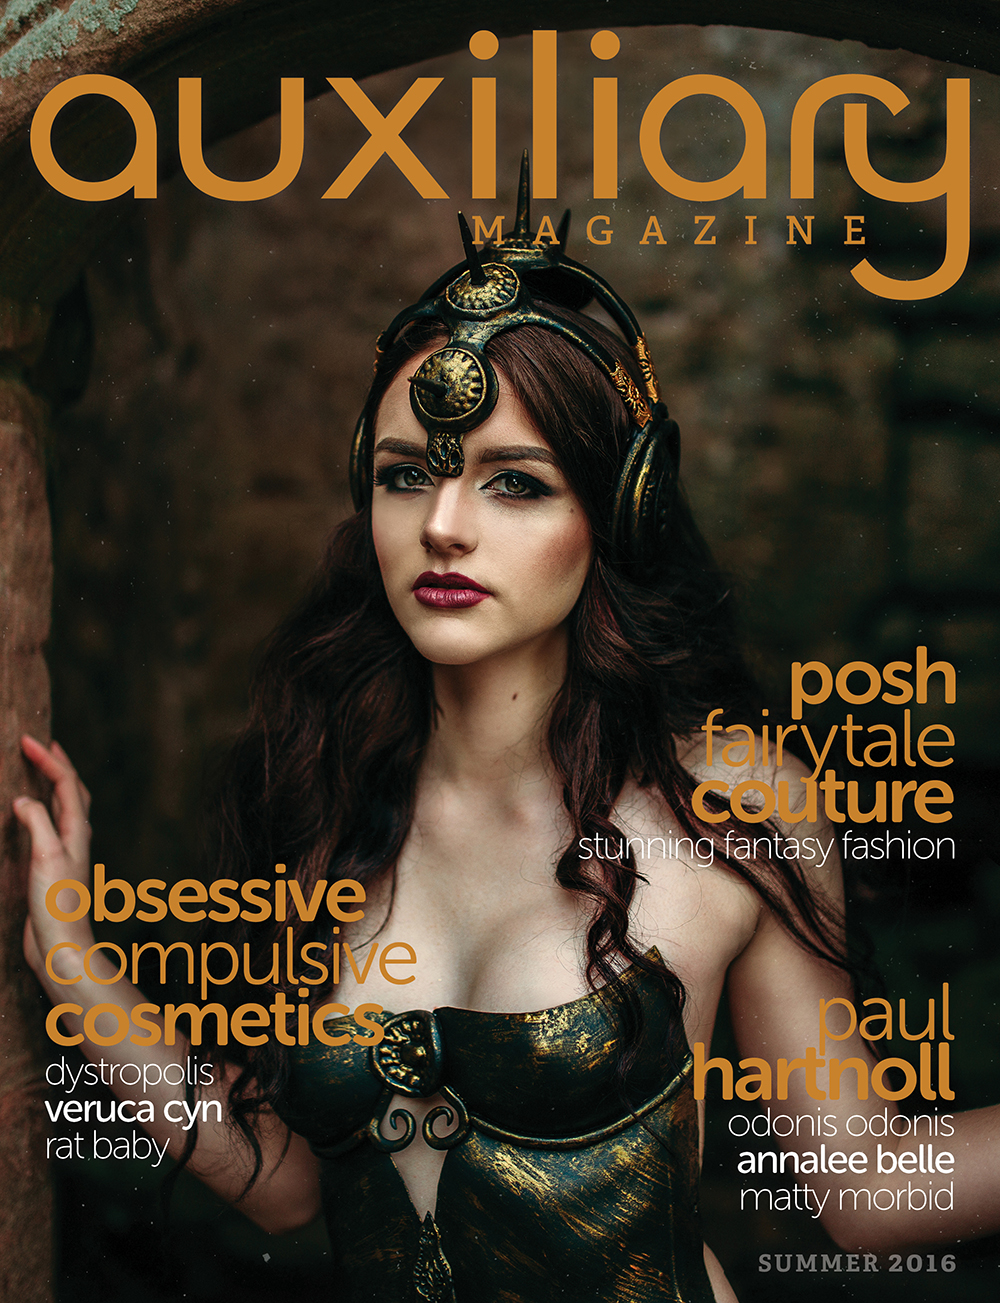 Auxiliary Magazine Summer 2016 Issue Posh Fairytale Couture